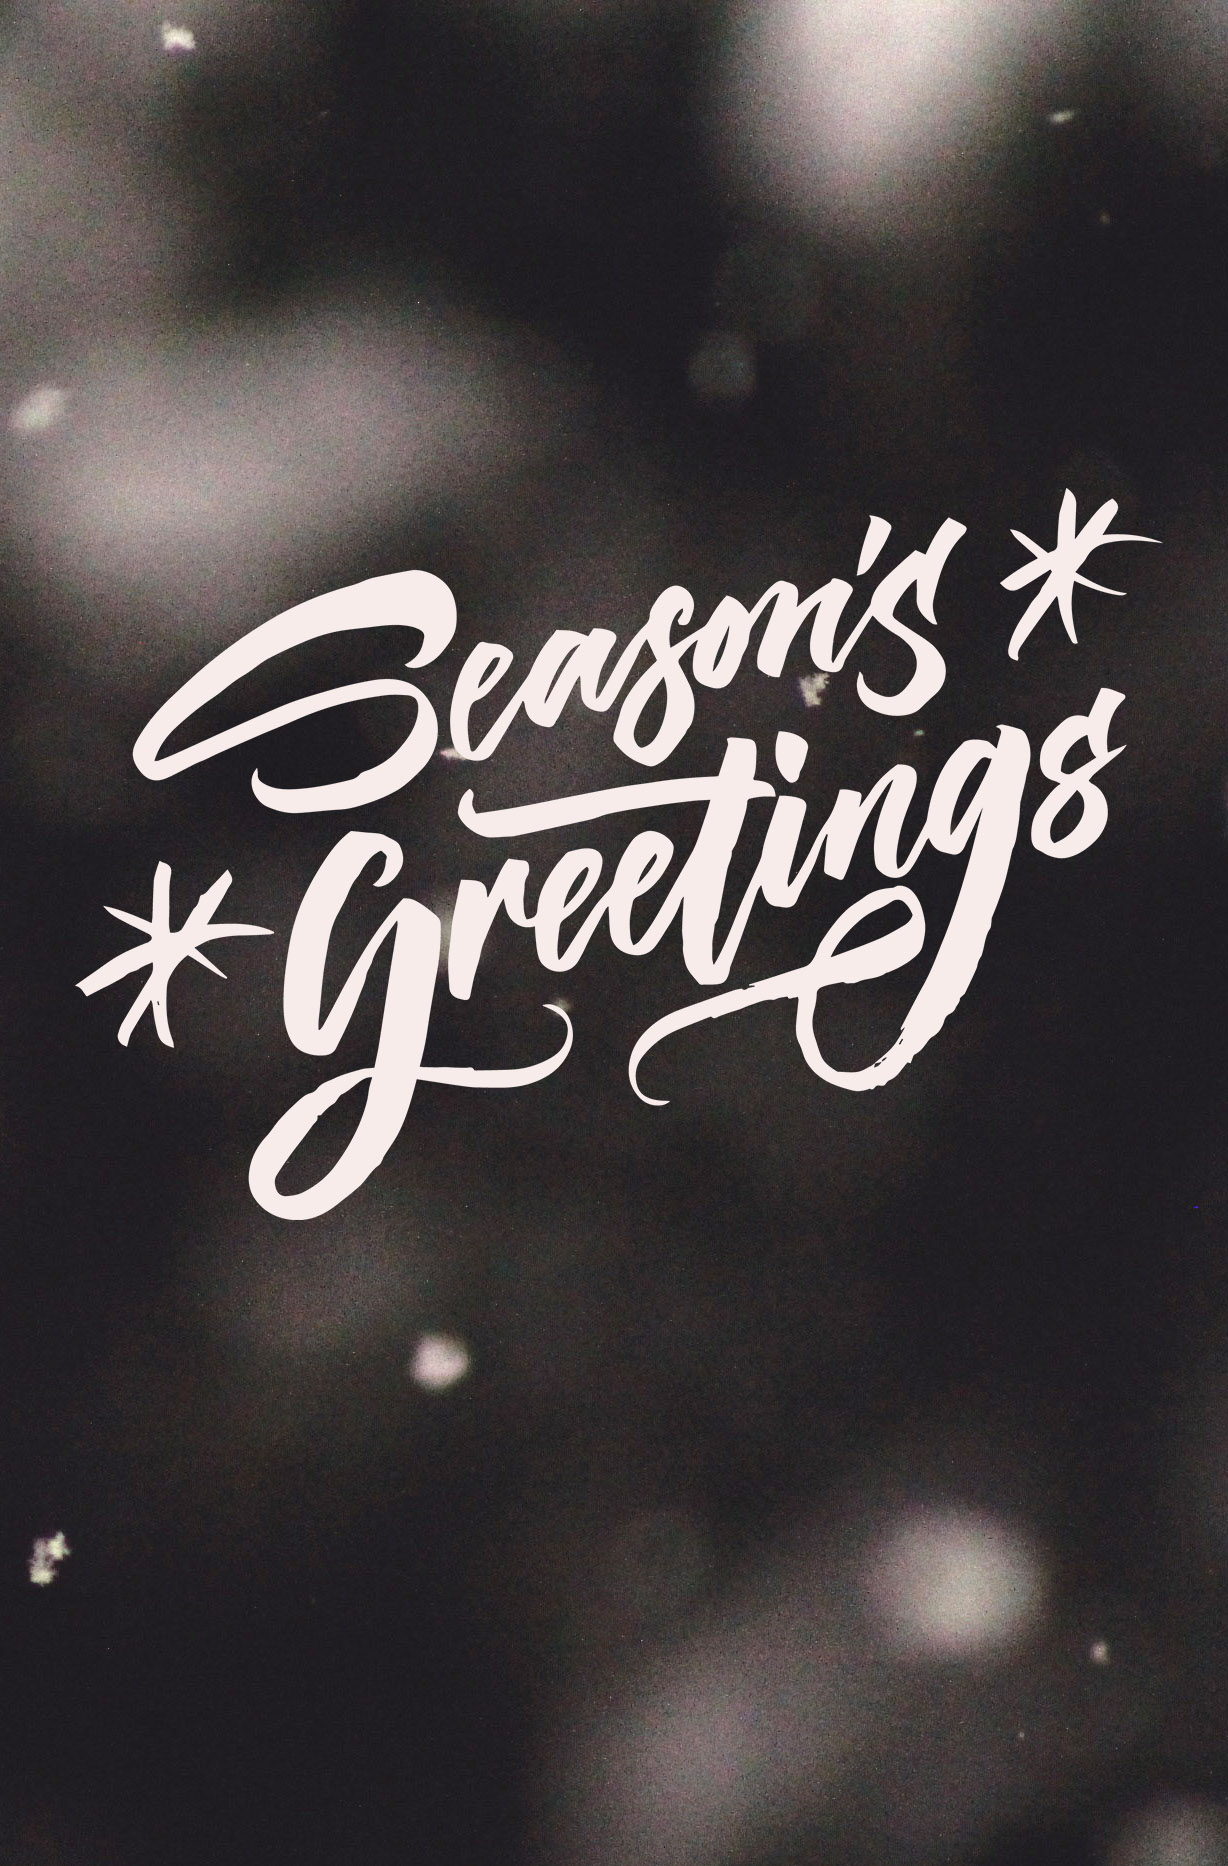 A collection of Christmas Overlays with lettering designs by Type and Graphics Lab | https://crmrkt.com/OMQk8 Photo credit: Christine Makhlouf | Source: unsplash.com